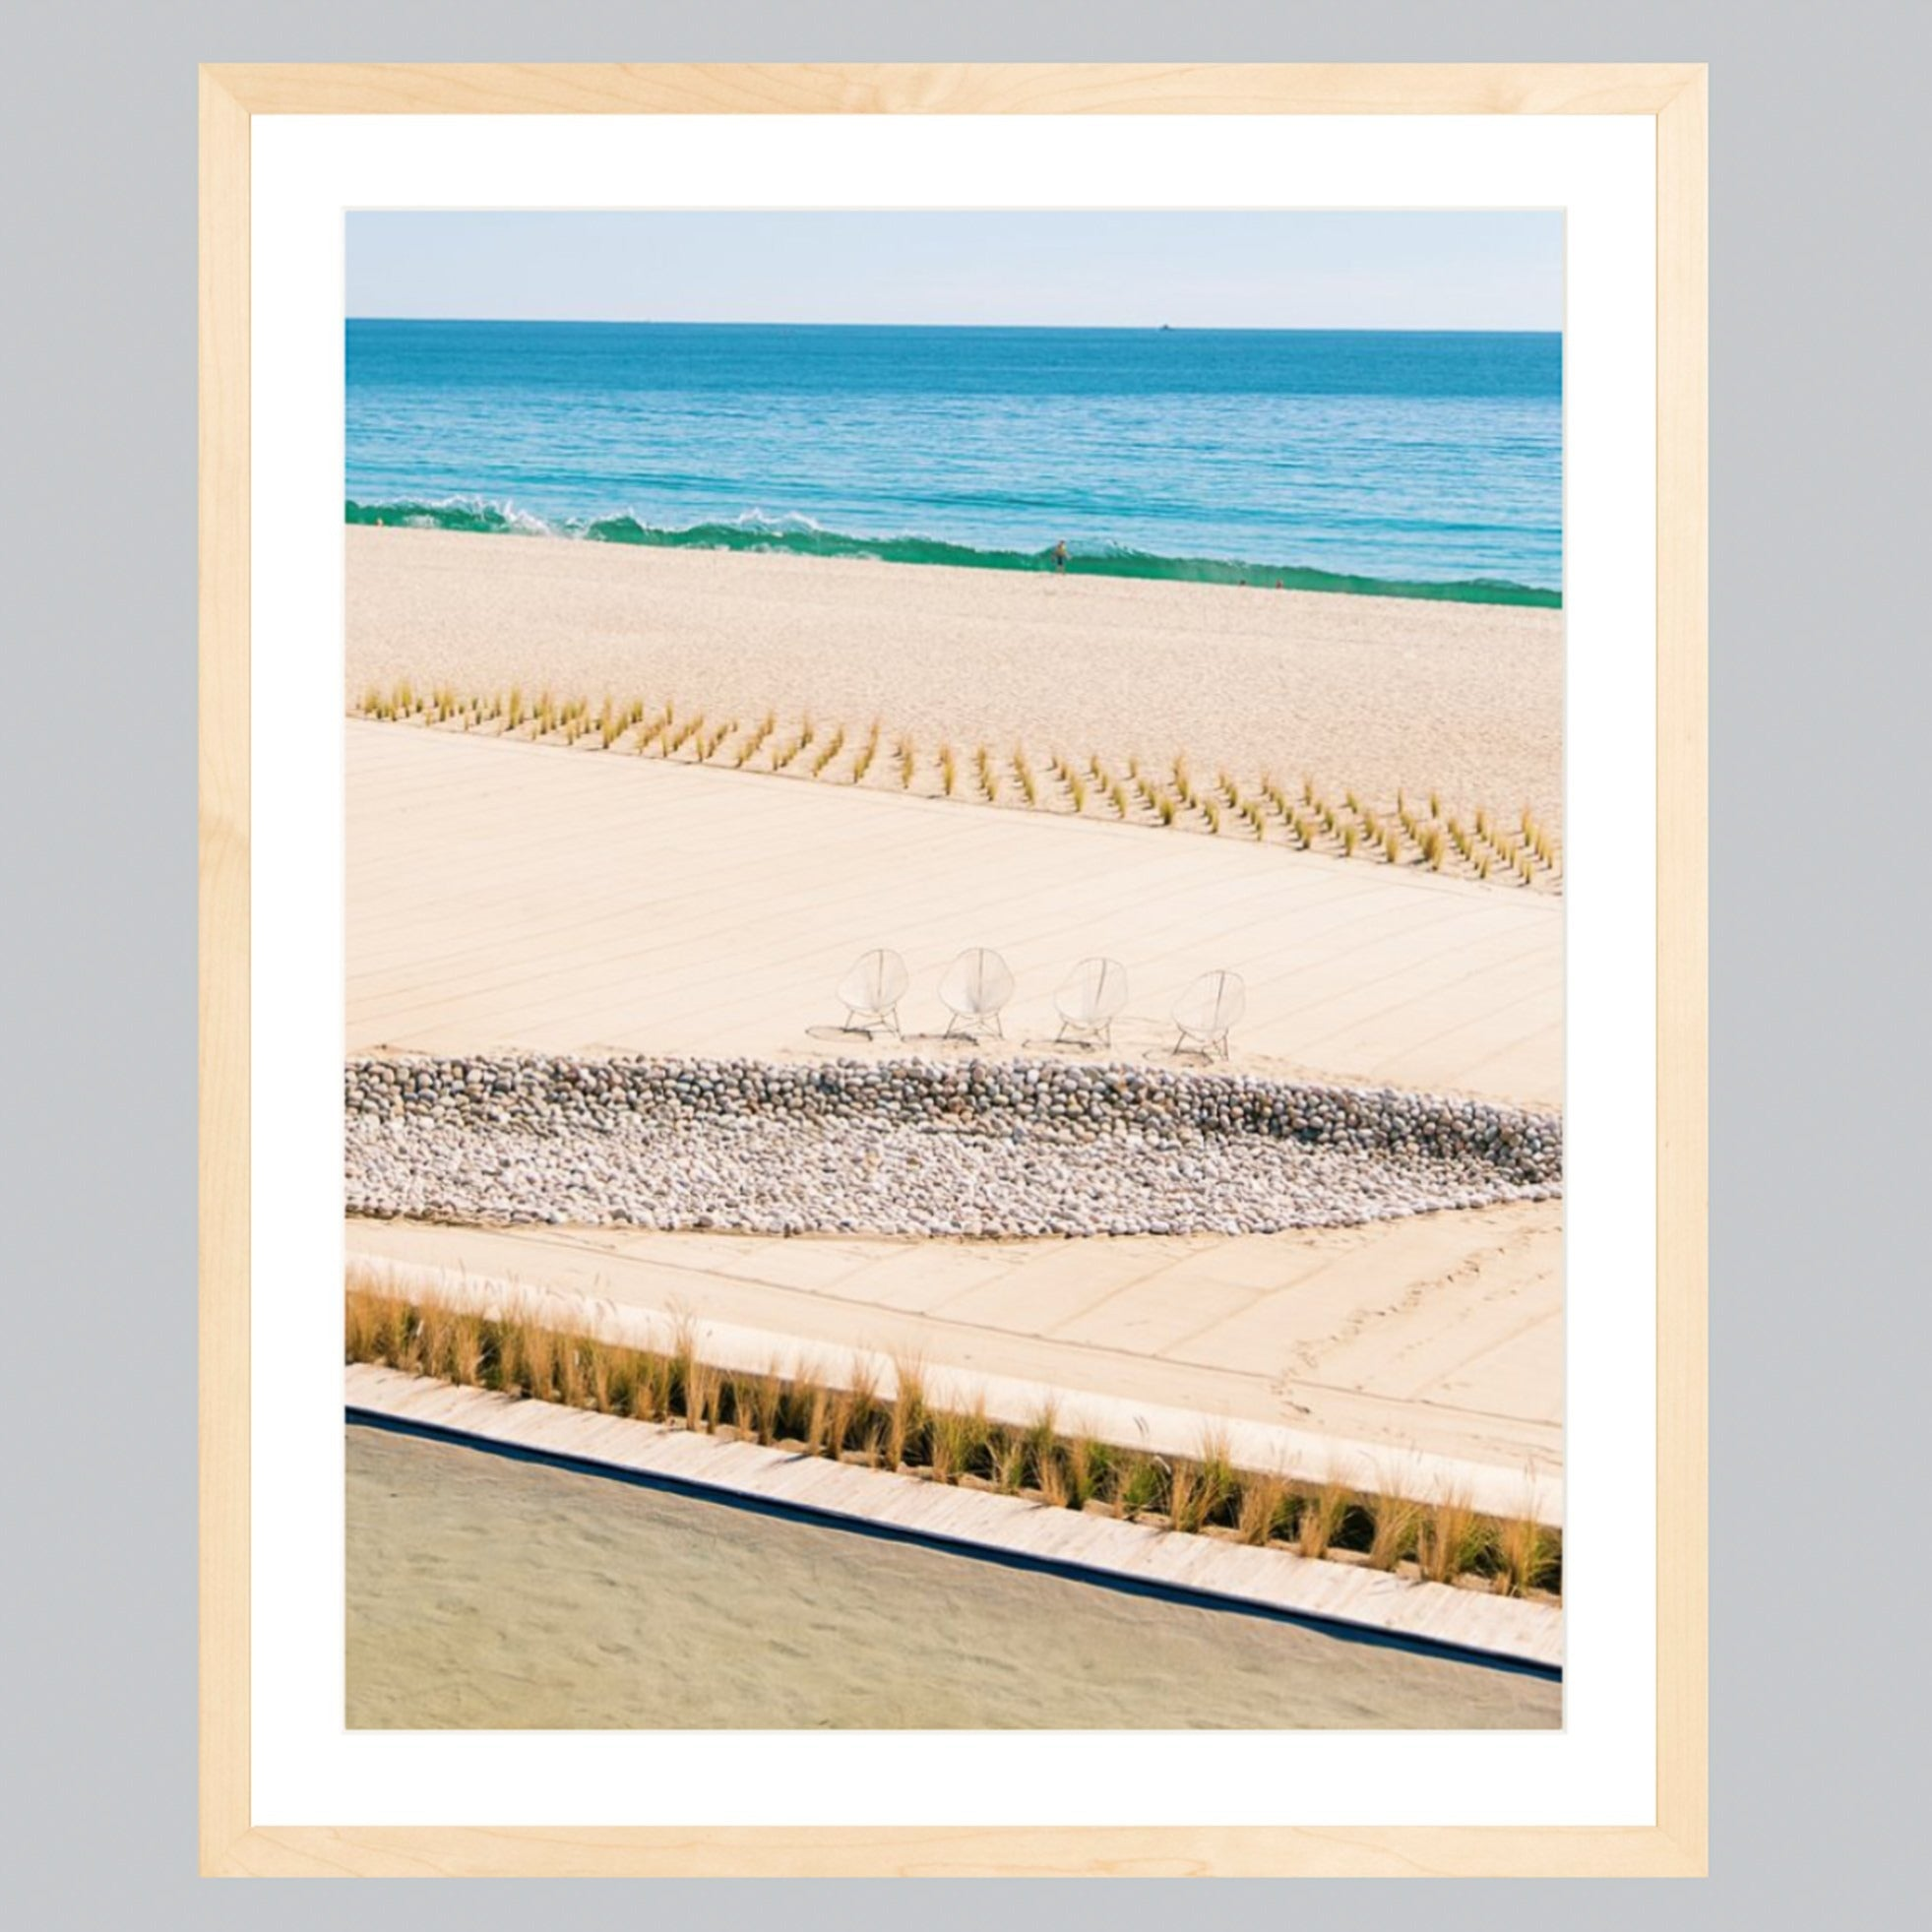 A fine art print featuring Baja beaches in a natural wood frame.